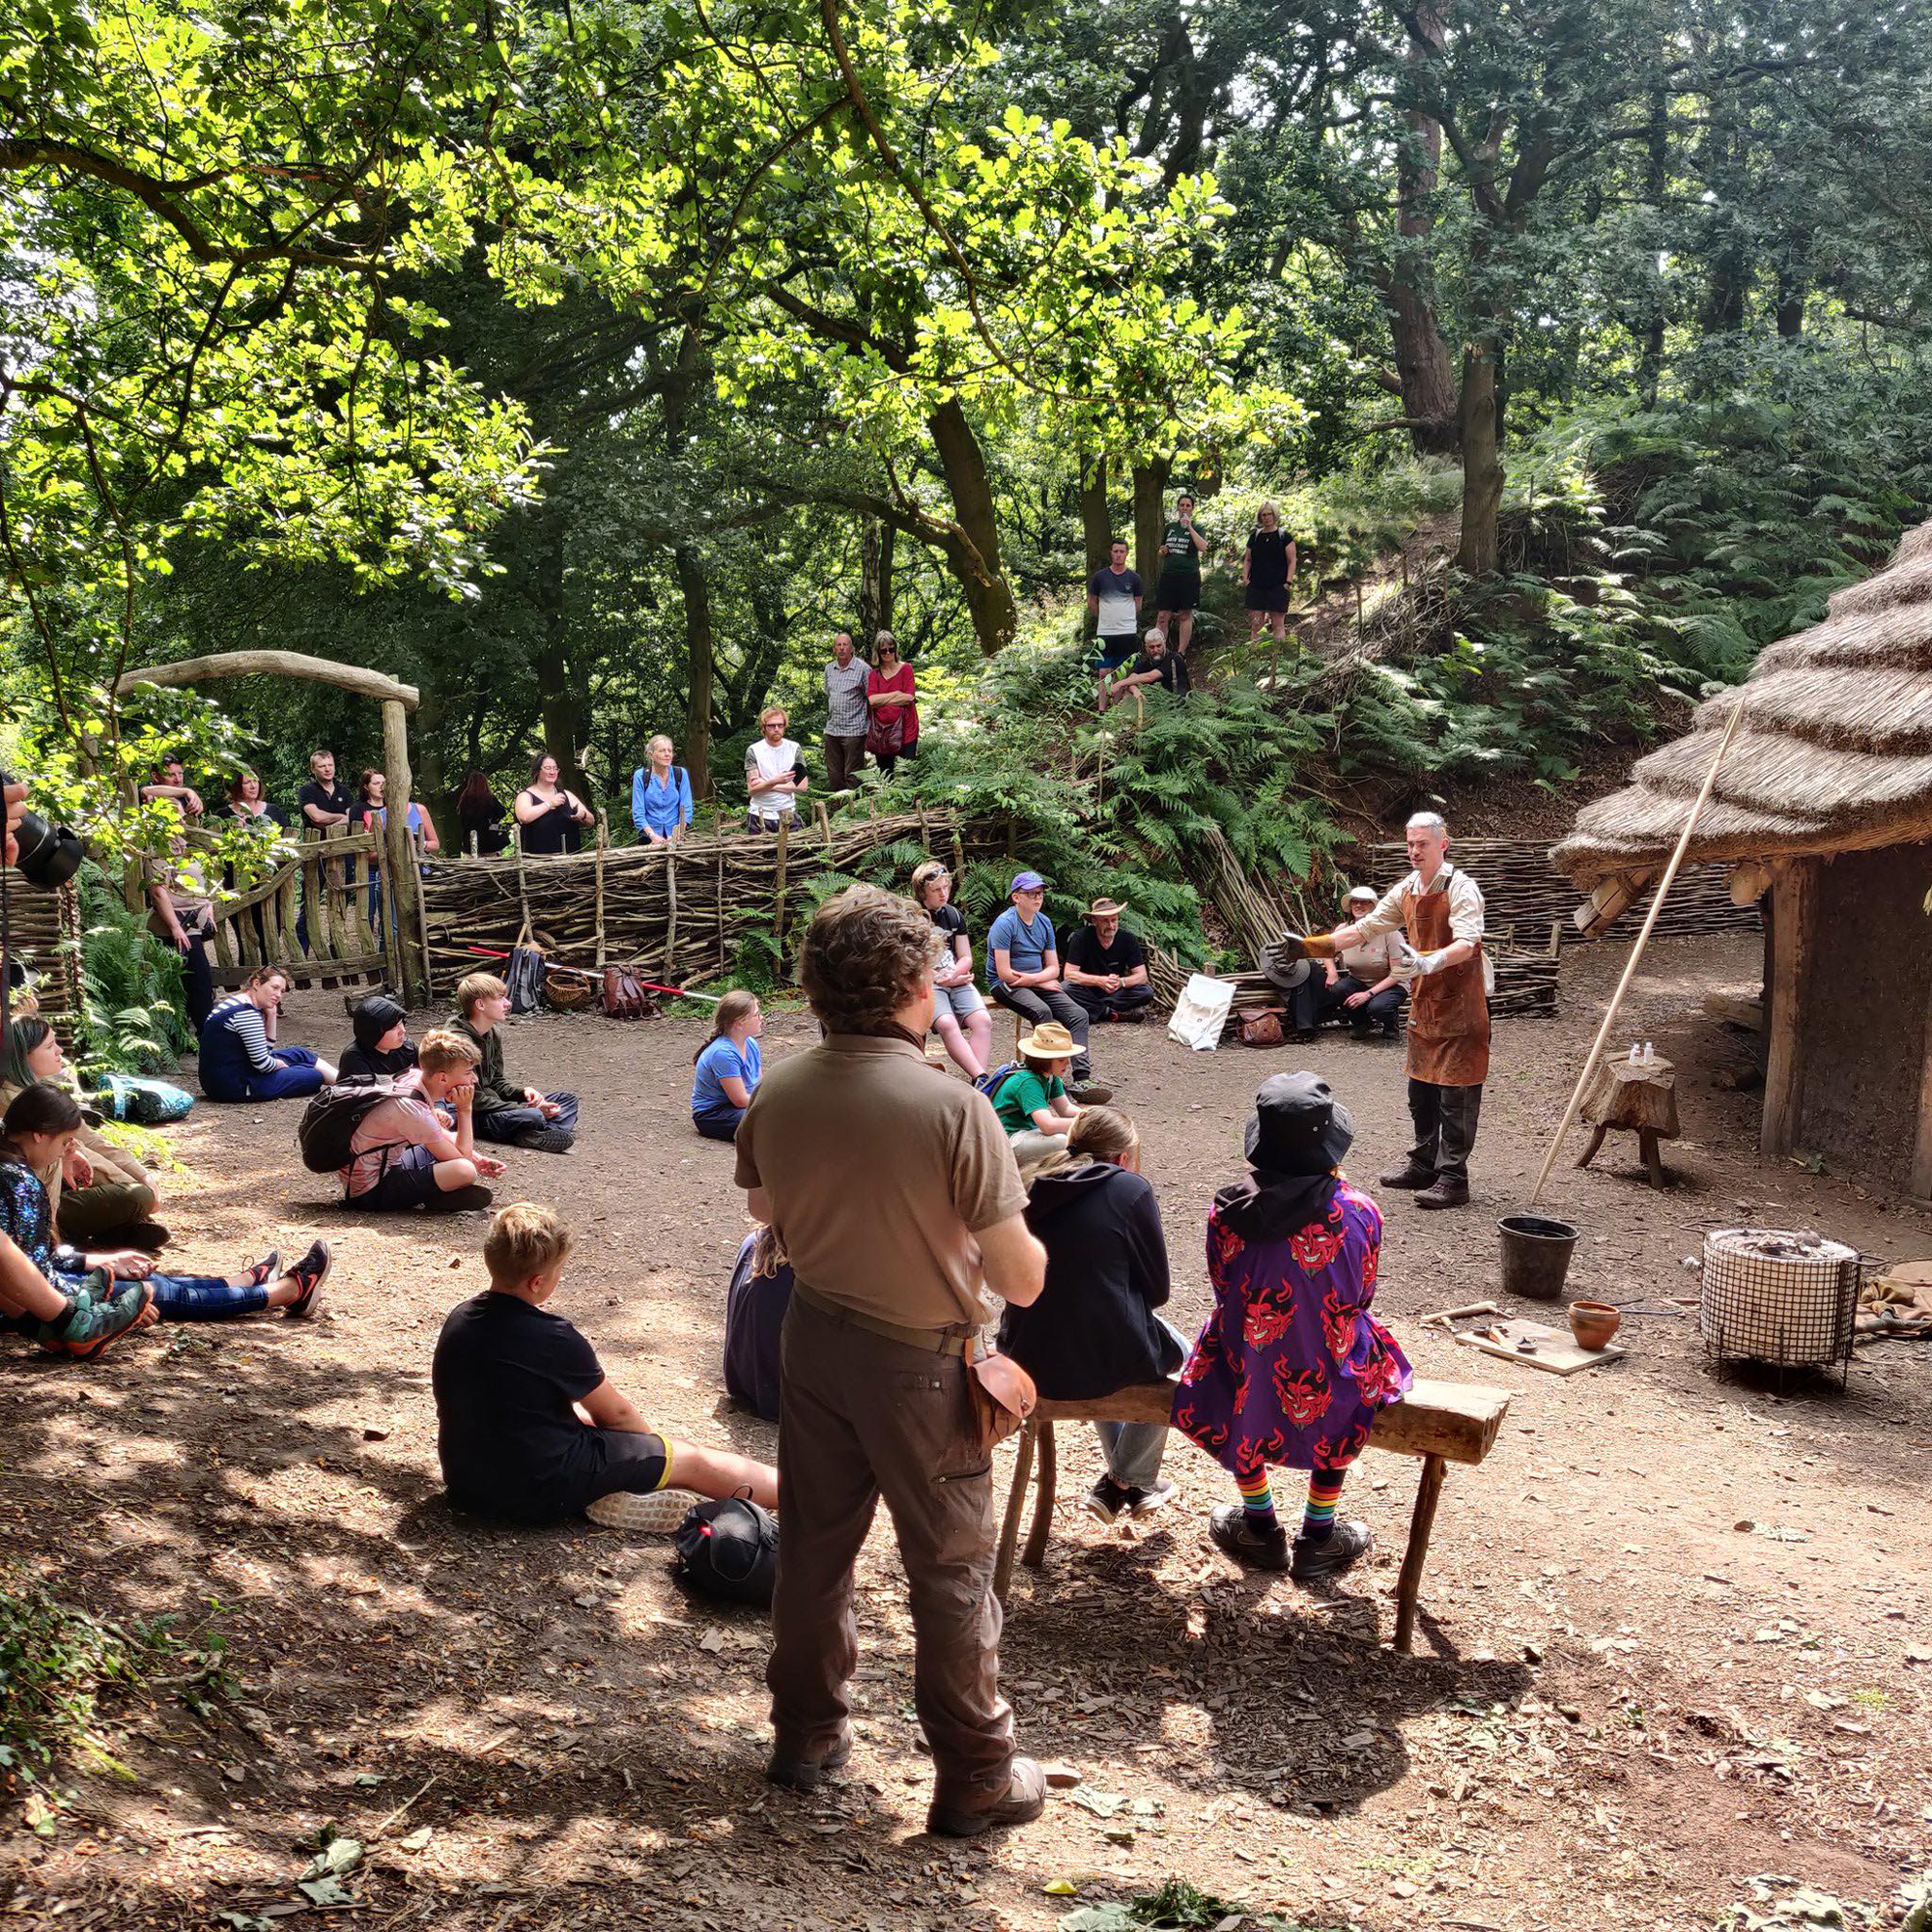 Youth engagement activity day at Beeston Castle, Cheshire